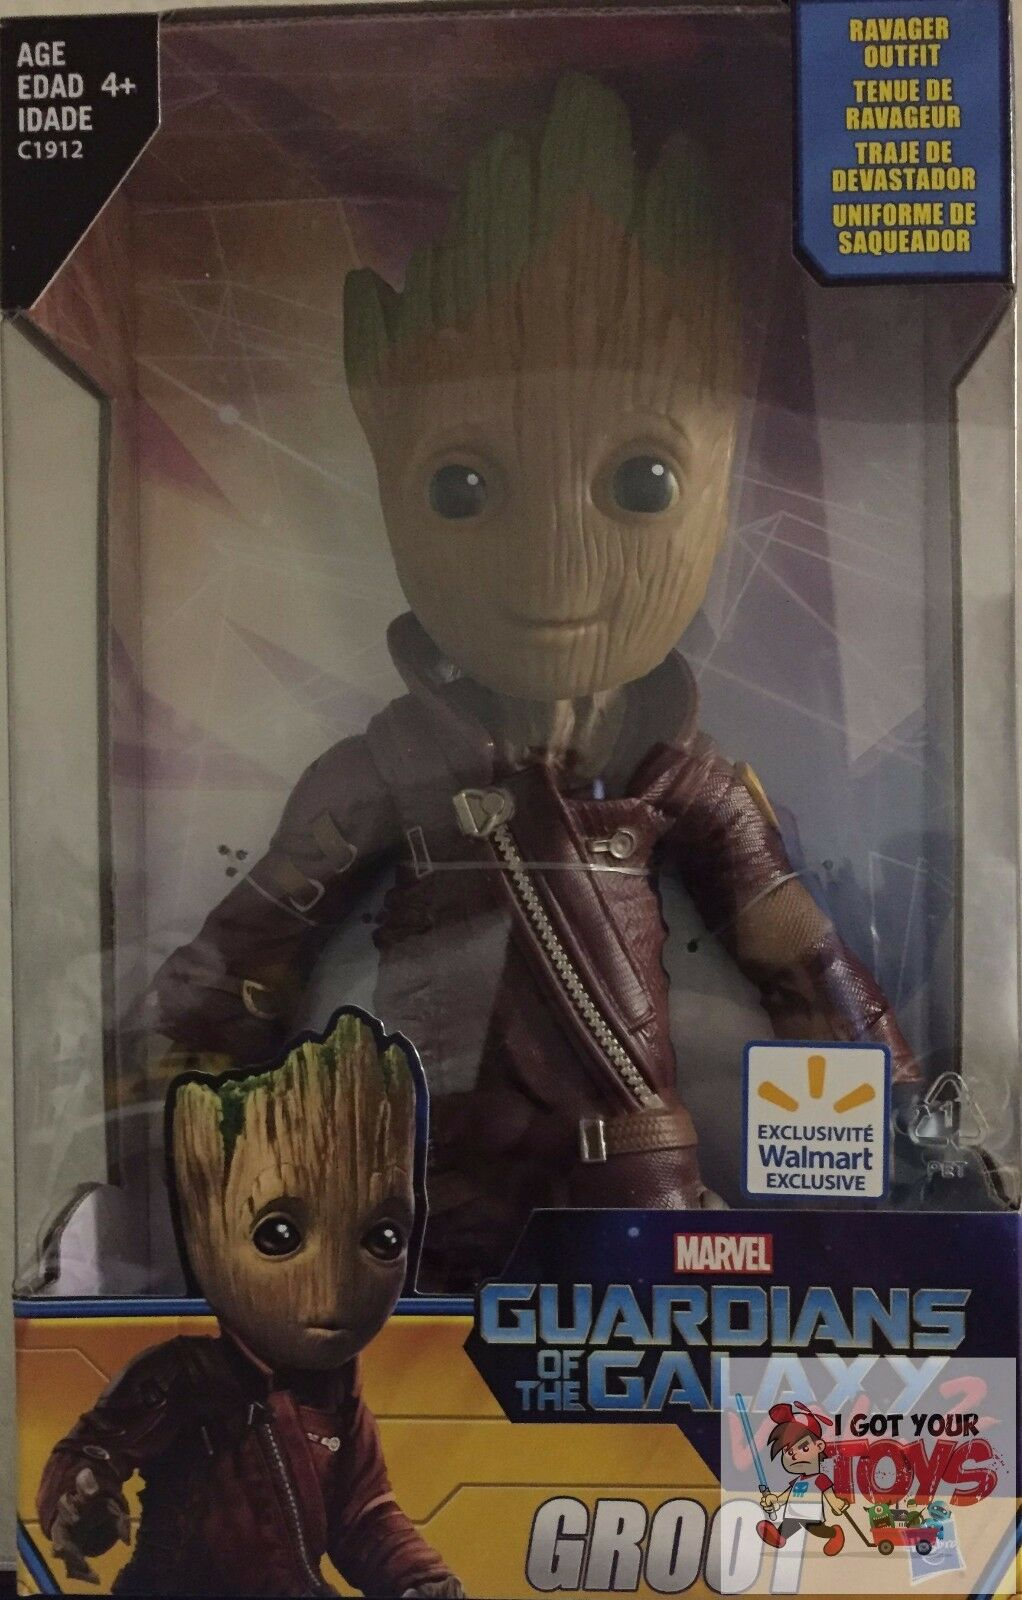 BABY GROOT 'RAVAGER' Hasbro Marvel GUARDIANS OF THE GALAXY Vol 2 9  Inch FIGURE